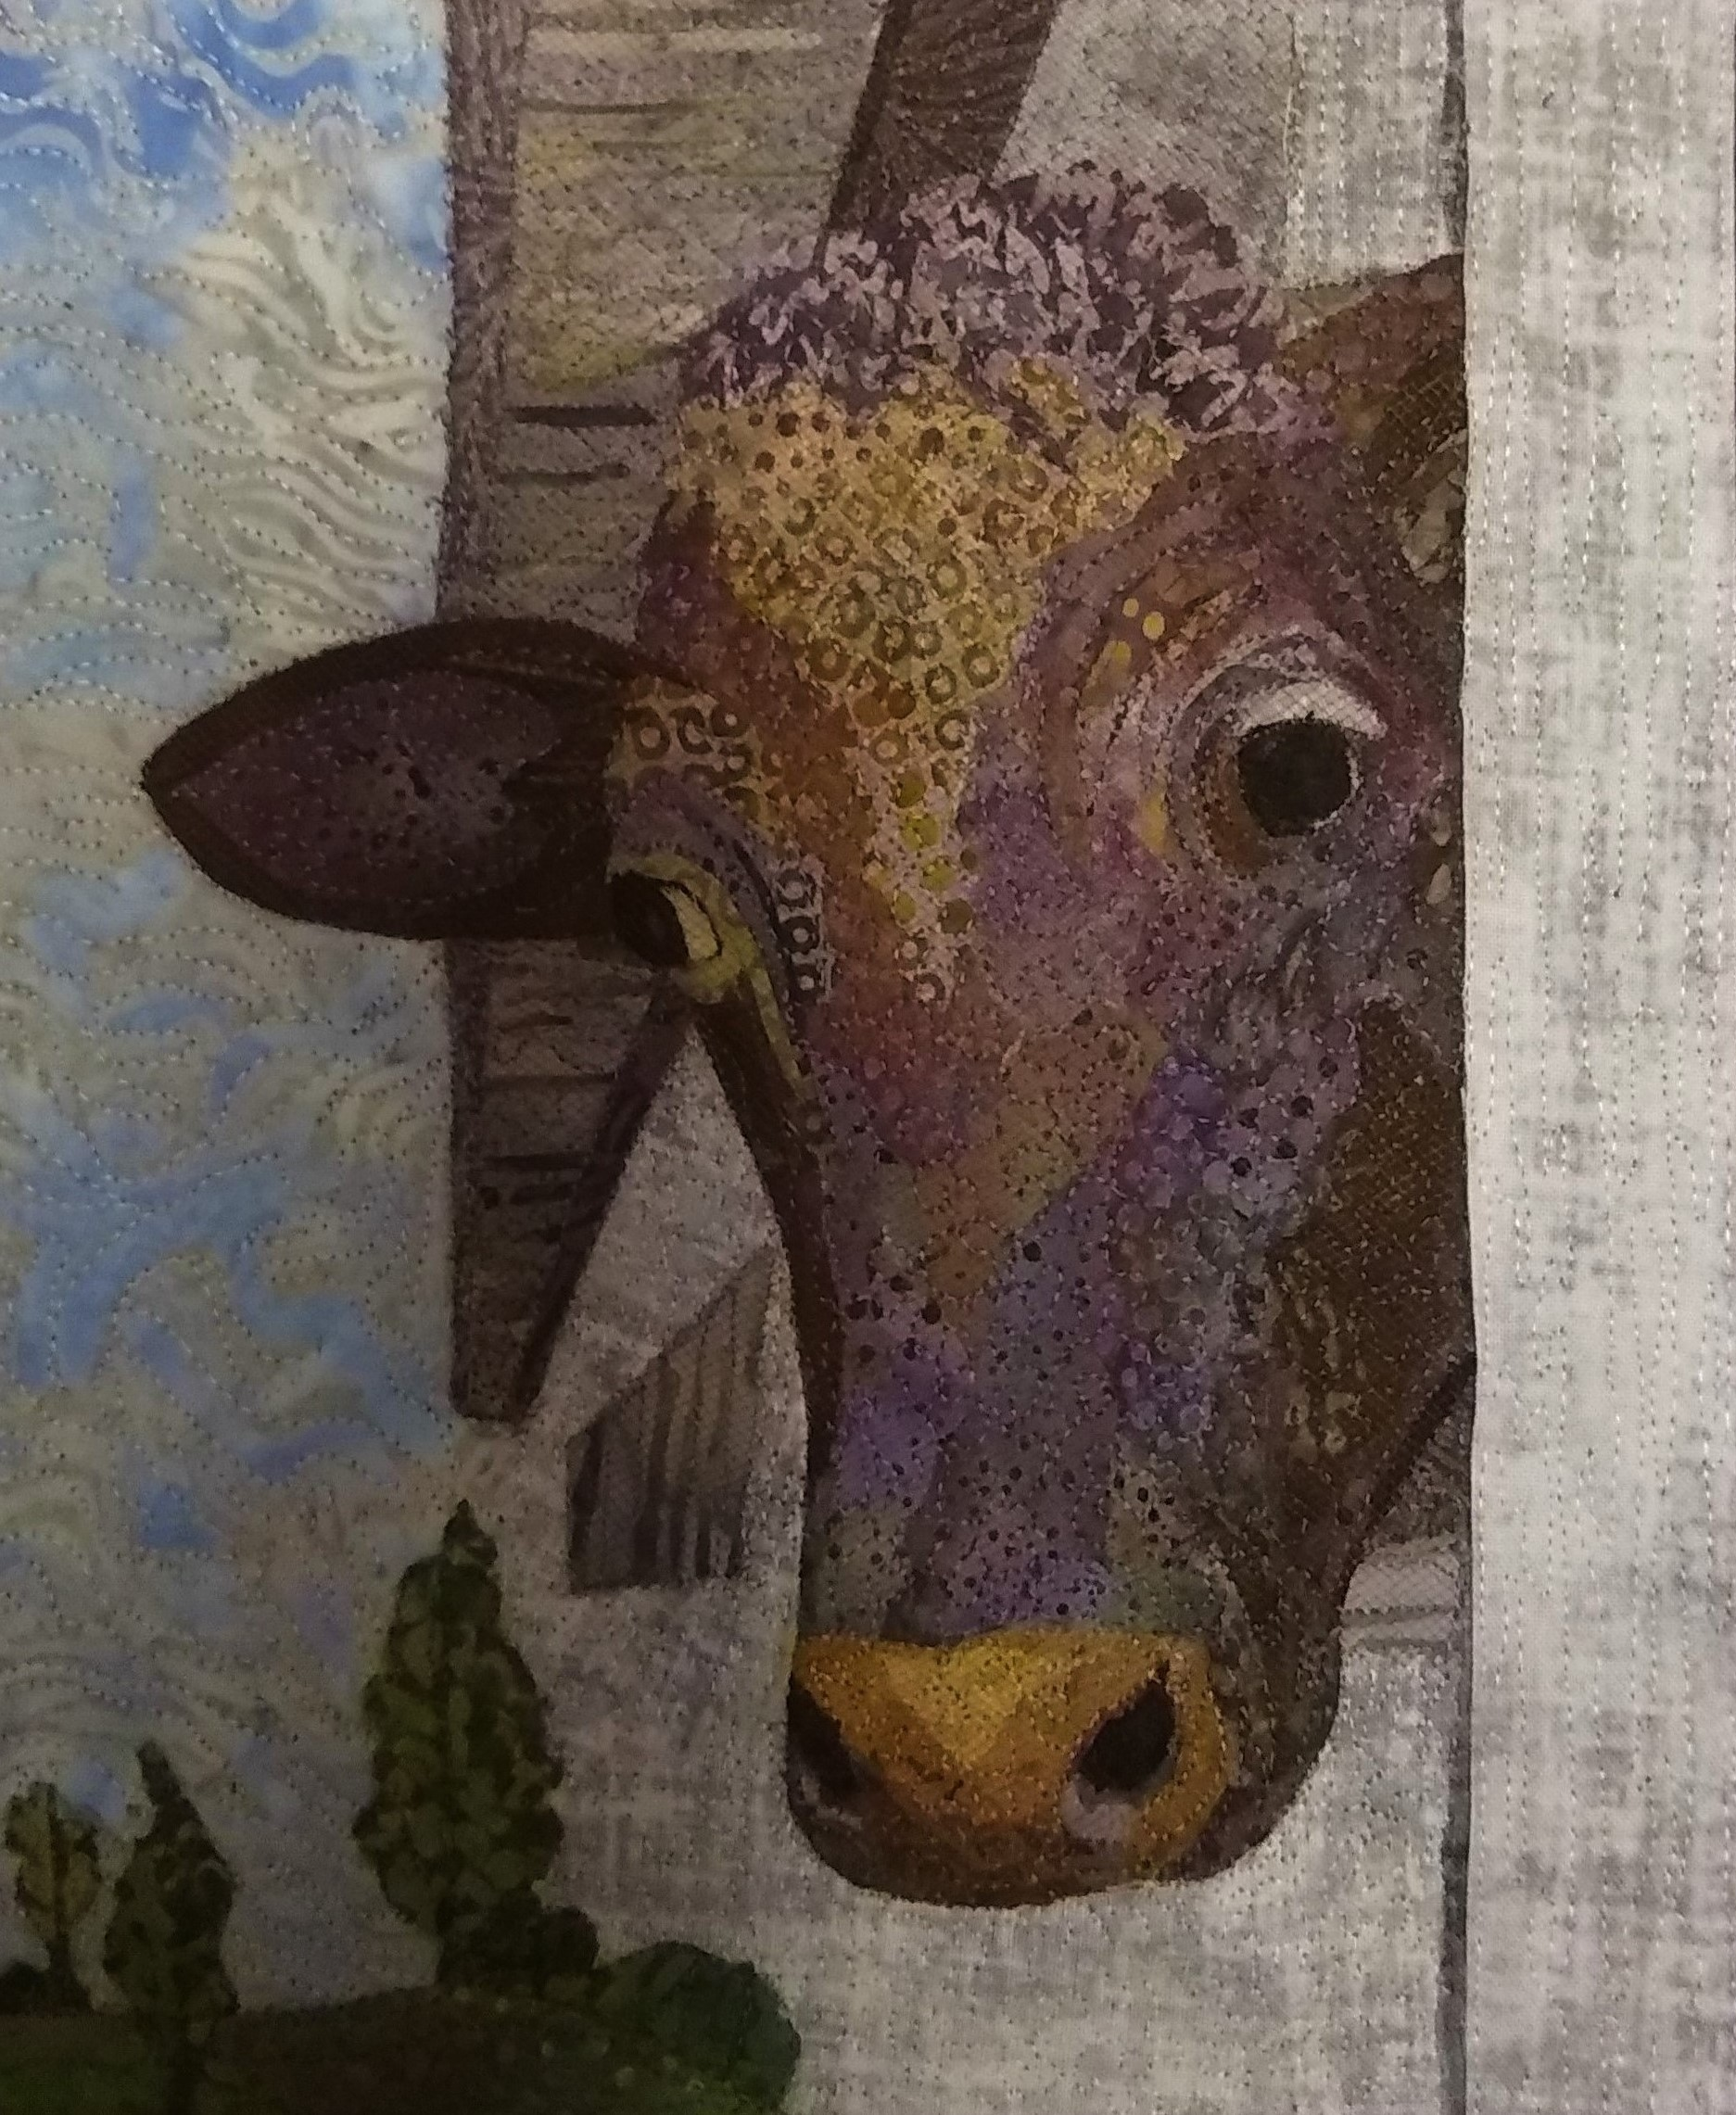 Cow in Barn Window